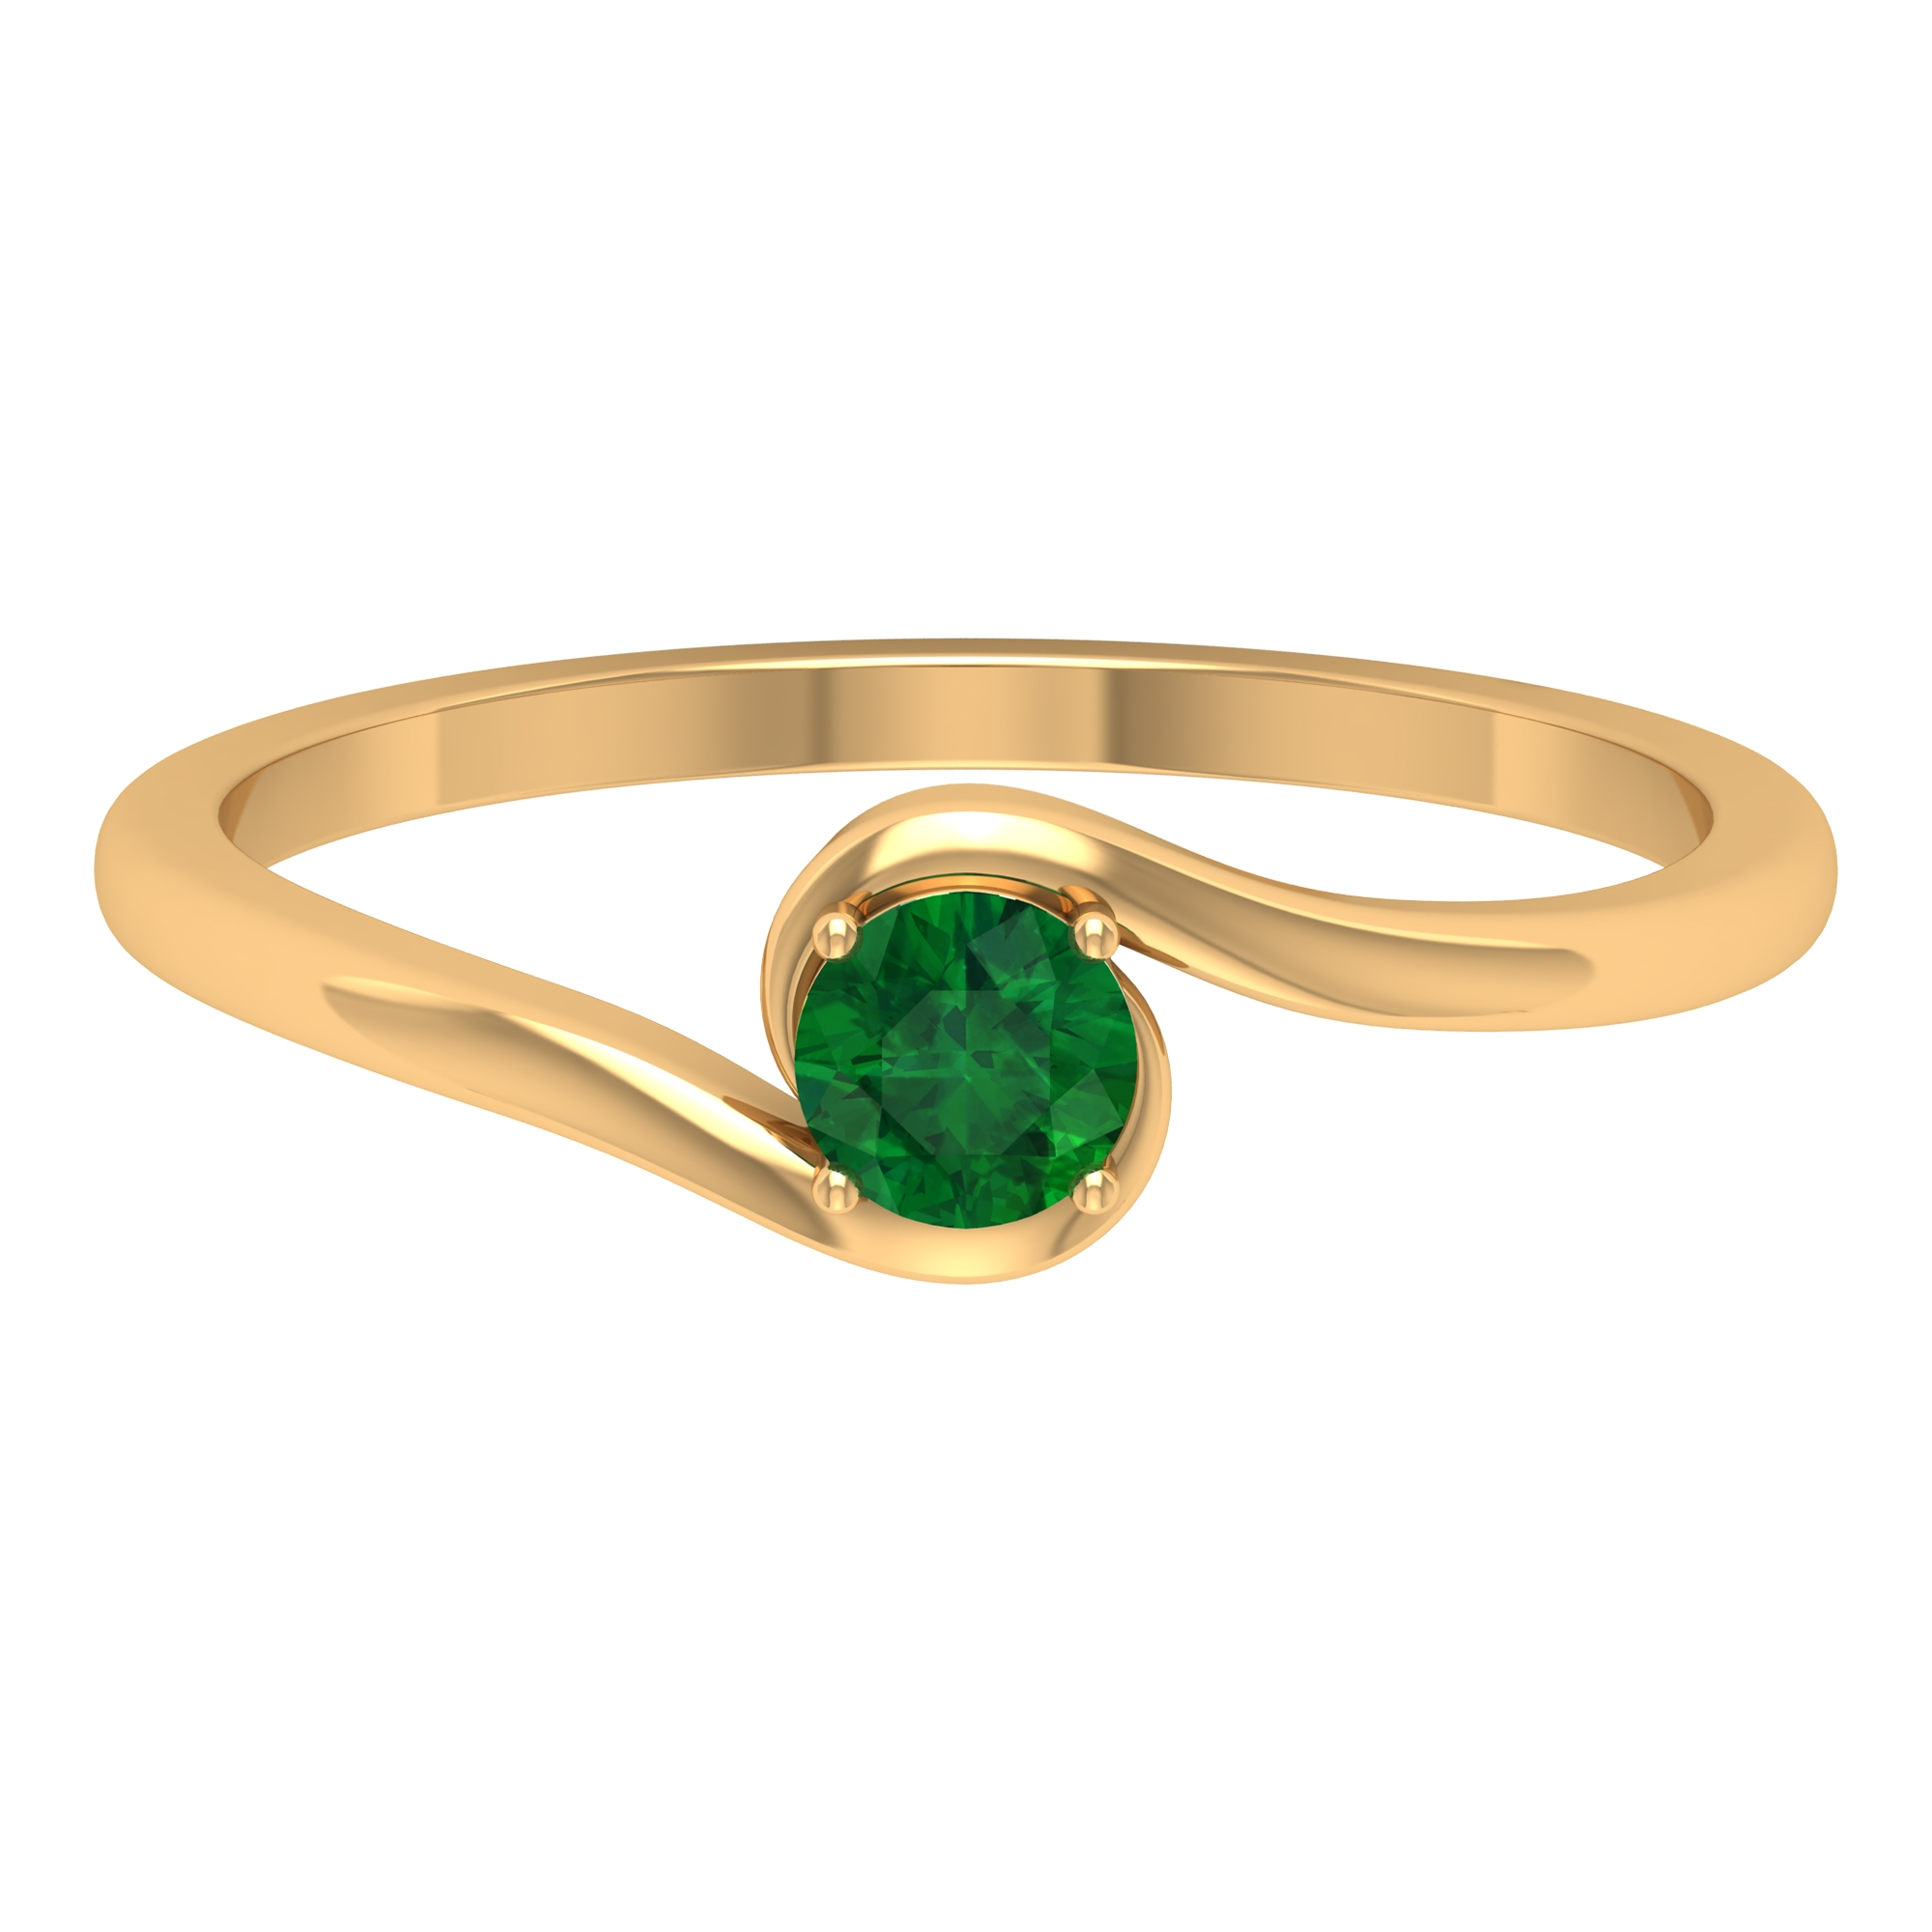 May Birthstone 4 MM Emerald Solitaire Ring in 4 Prong Setting with Bypass Shank